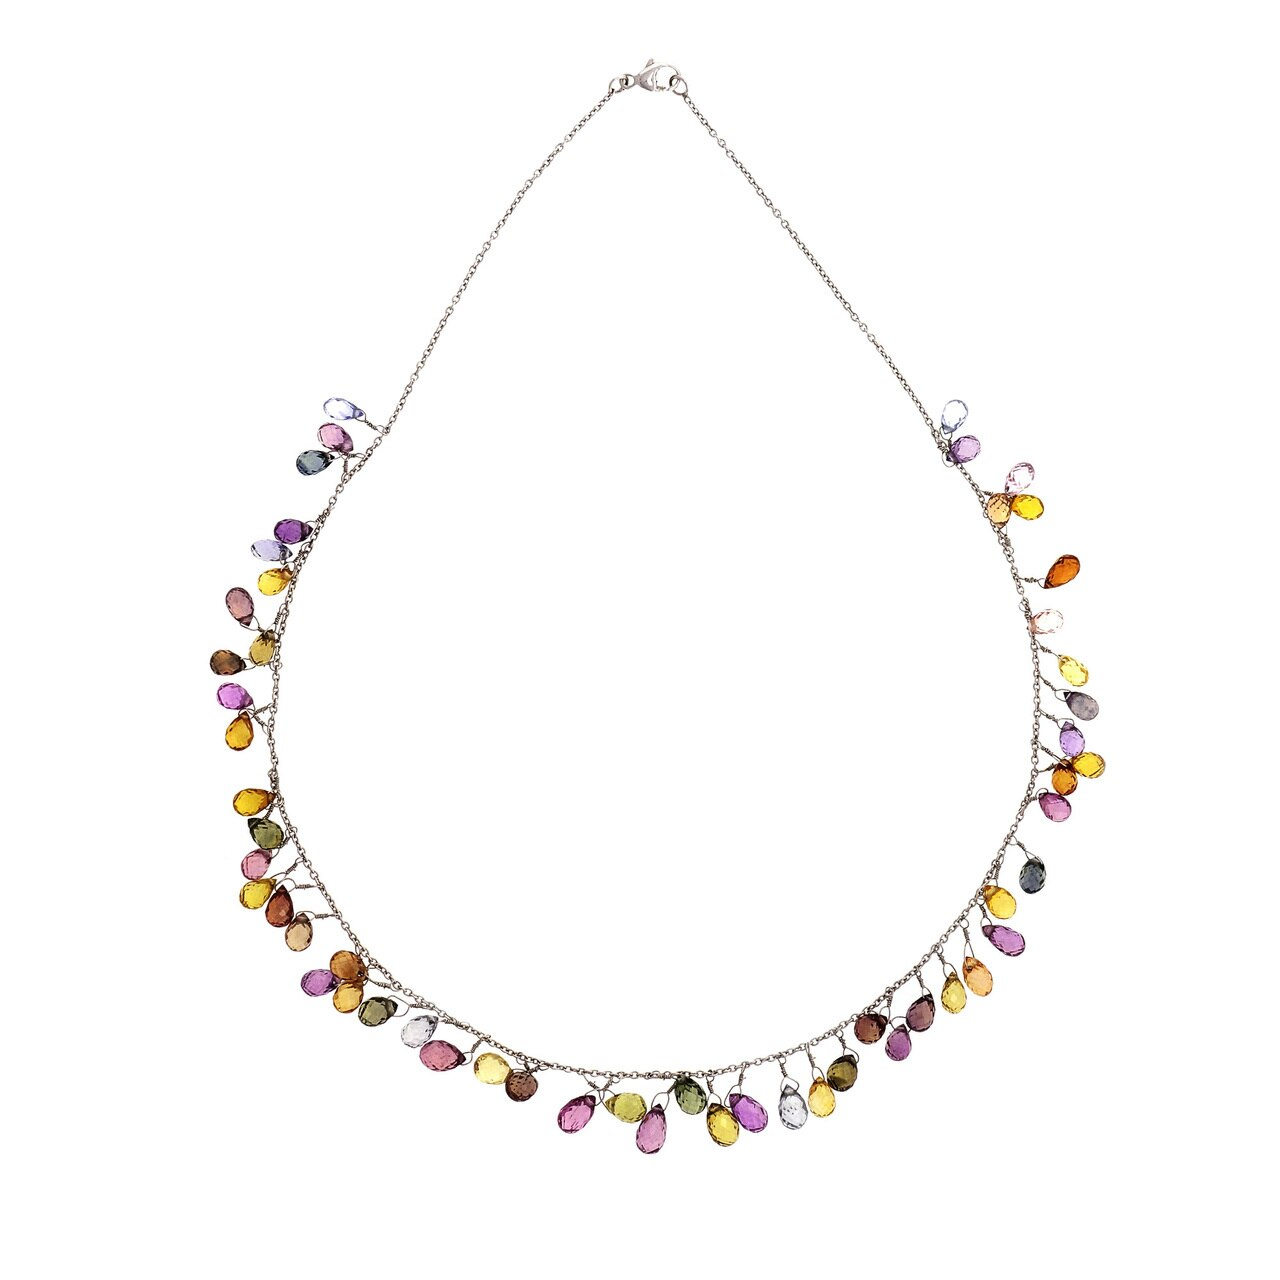 Discover the Best Spring Gemstone Jewelry